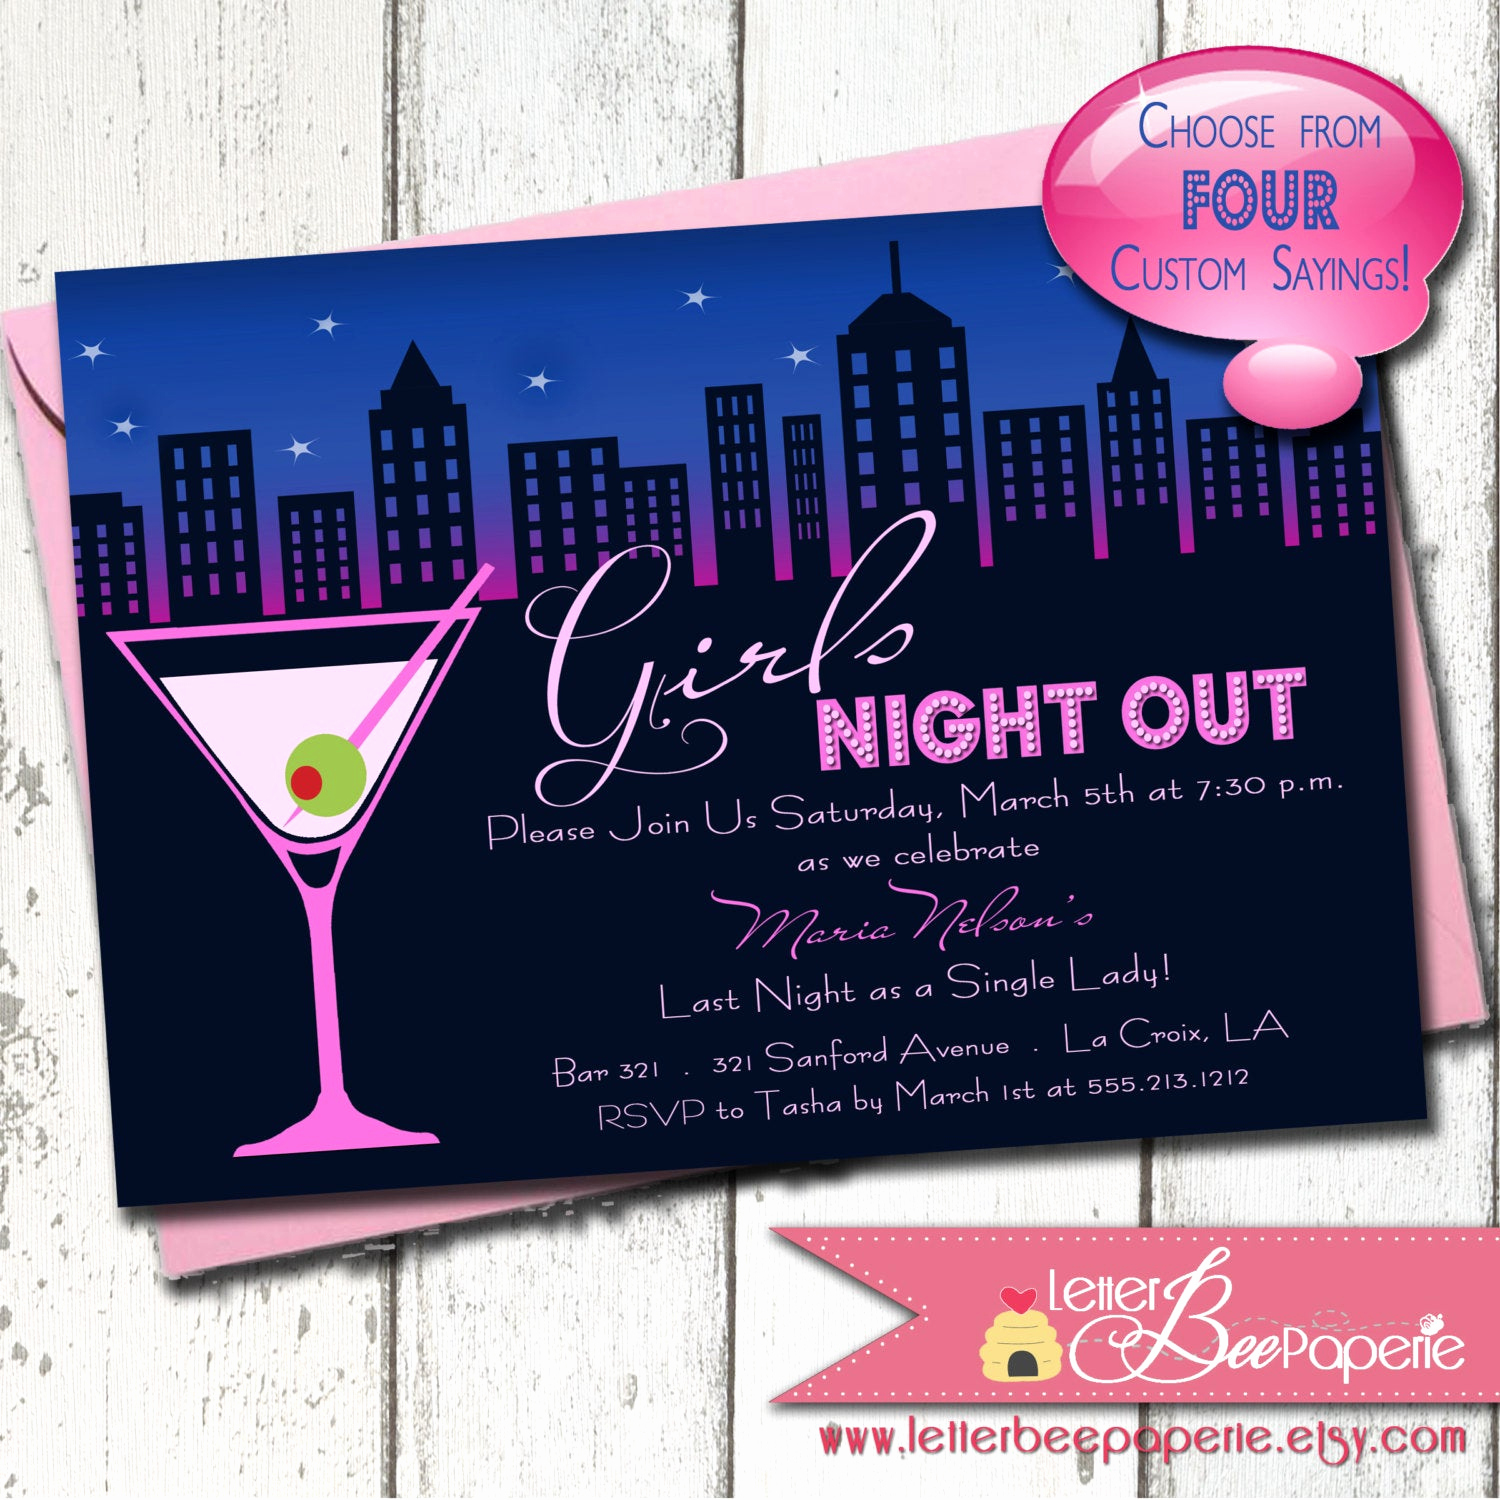 Girls Night Out Invitation Beautiful Bachelorette Party Invitation Girls Night Out La S Night